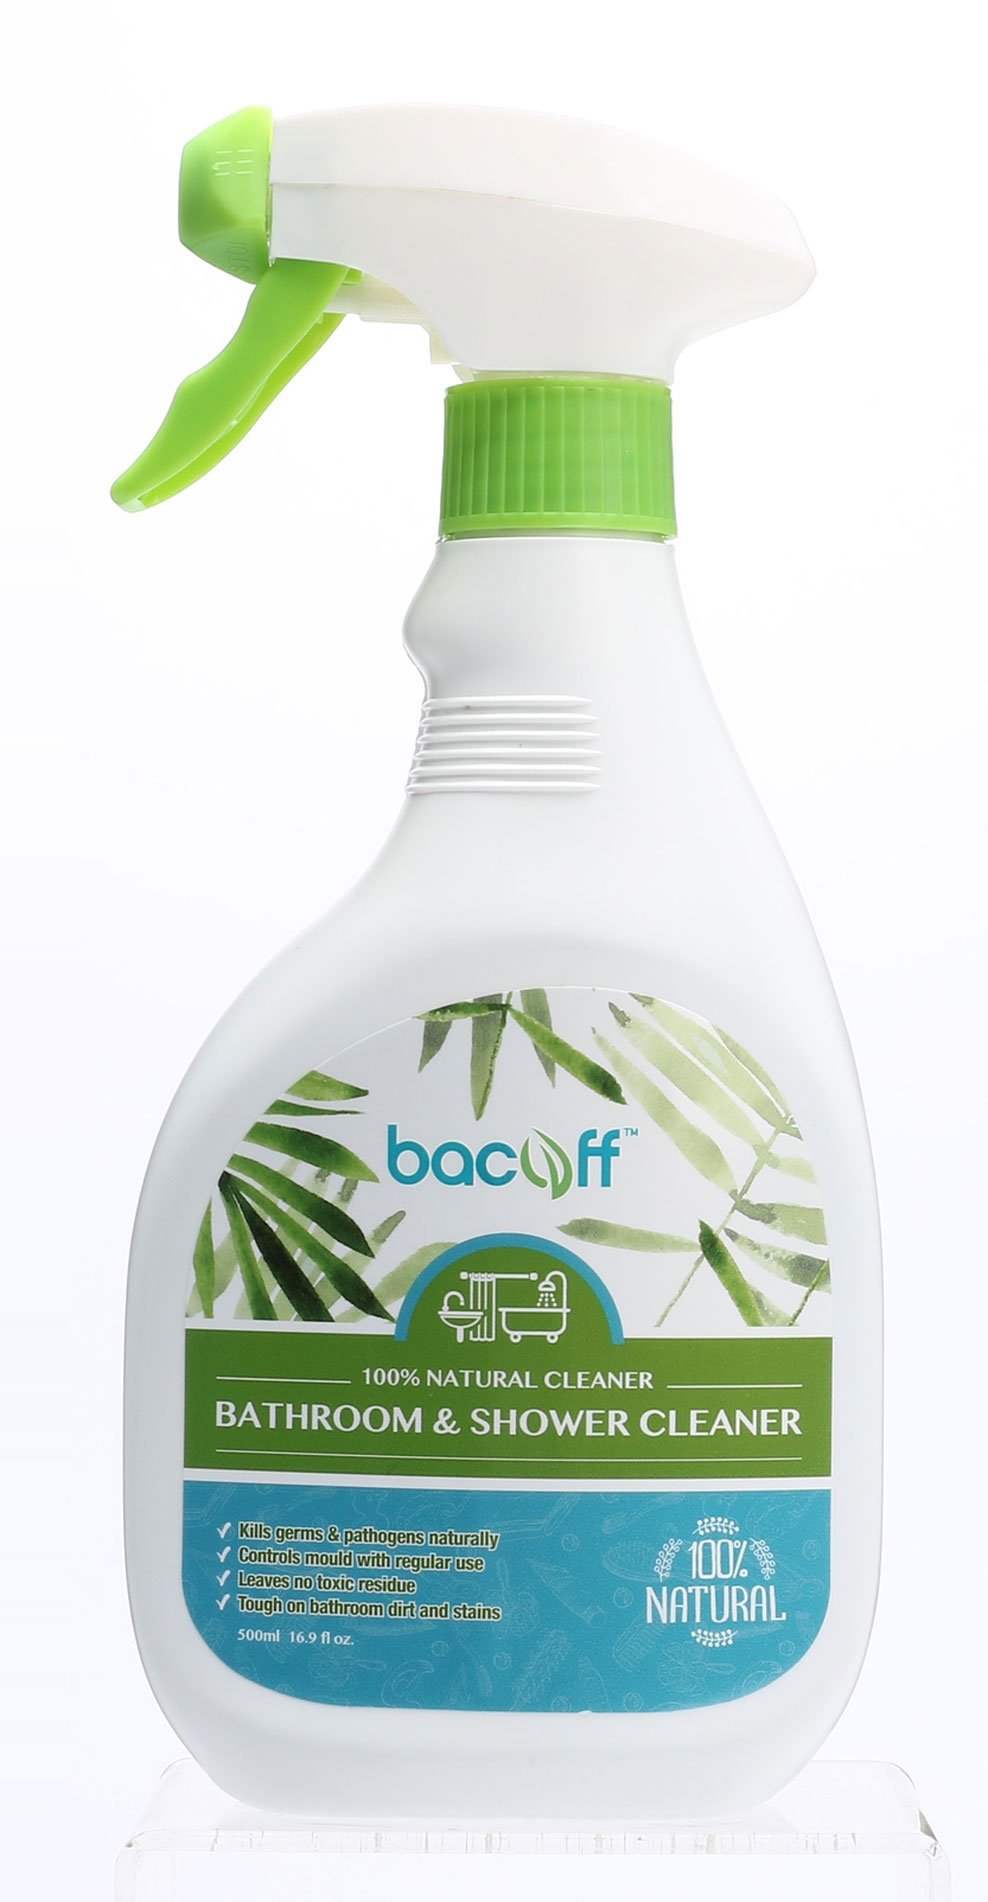 BACOFF Bathroom & Shower Cleaner - Signature Market